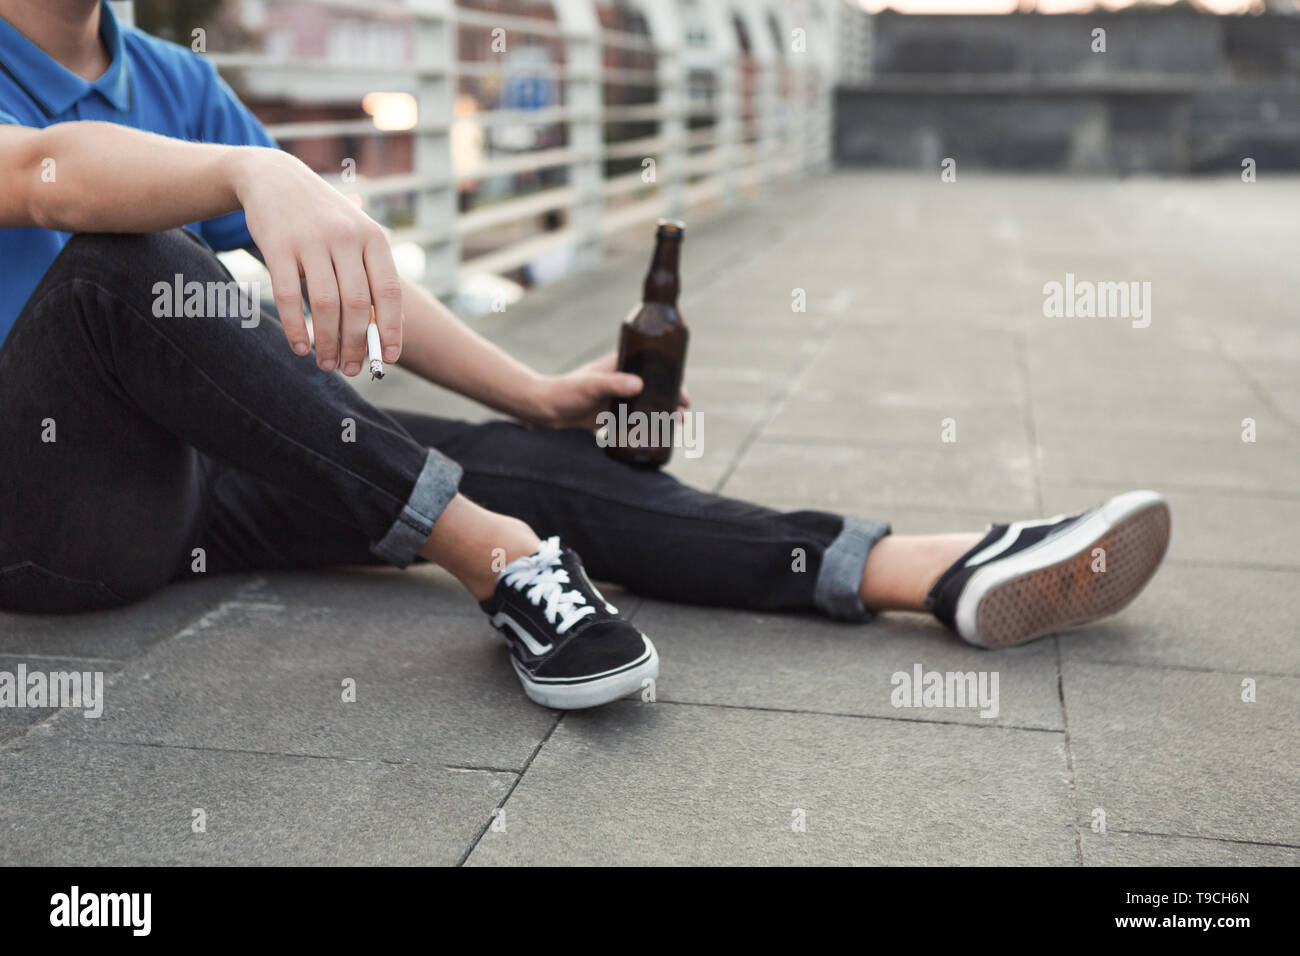 Teen guy smoking cigarette and drinking beer, sitting alone - Stock Image